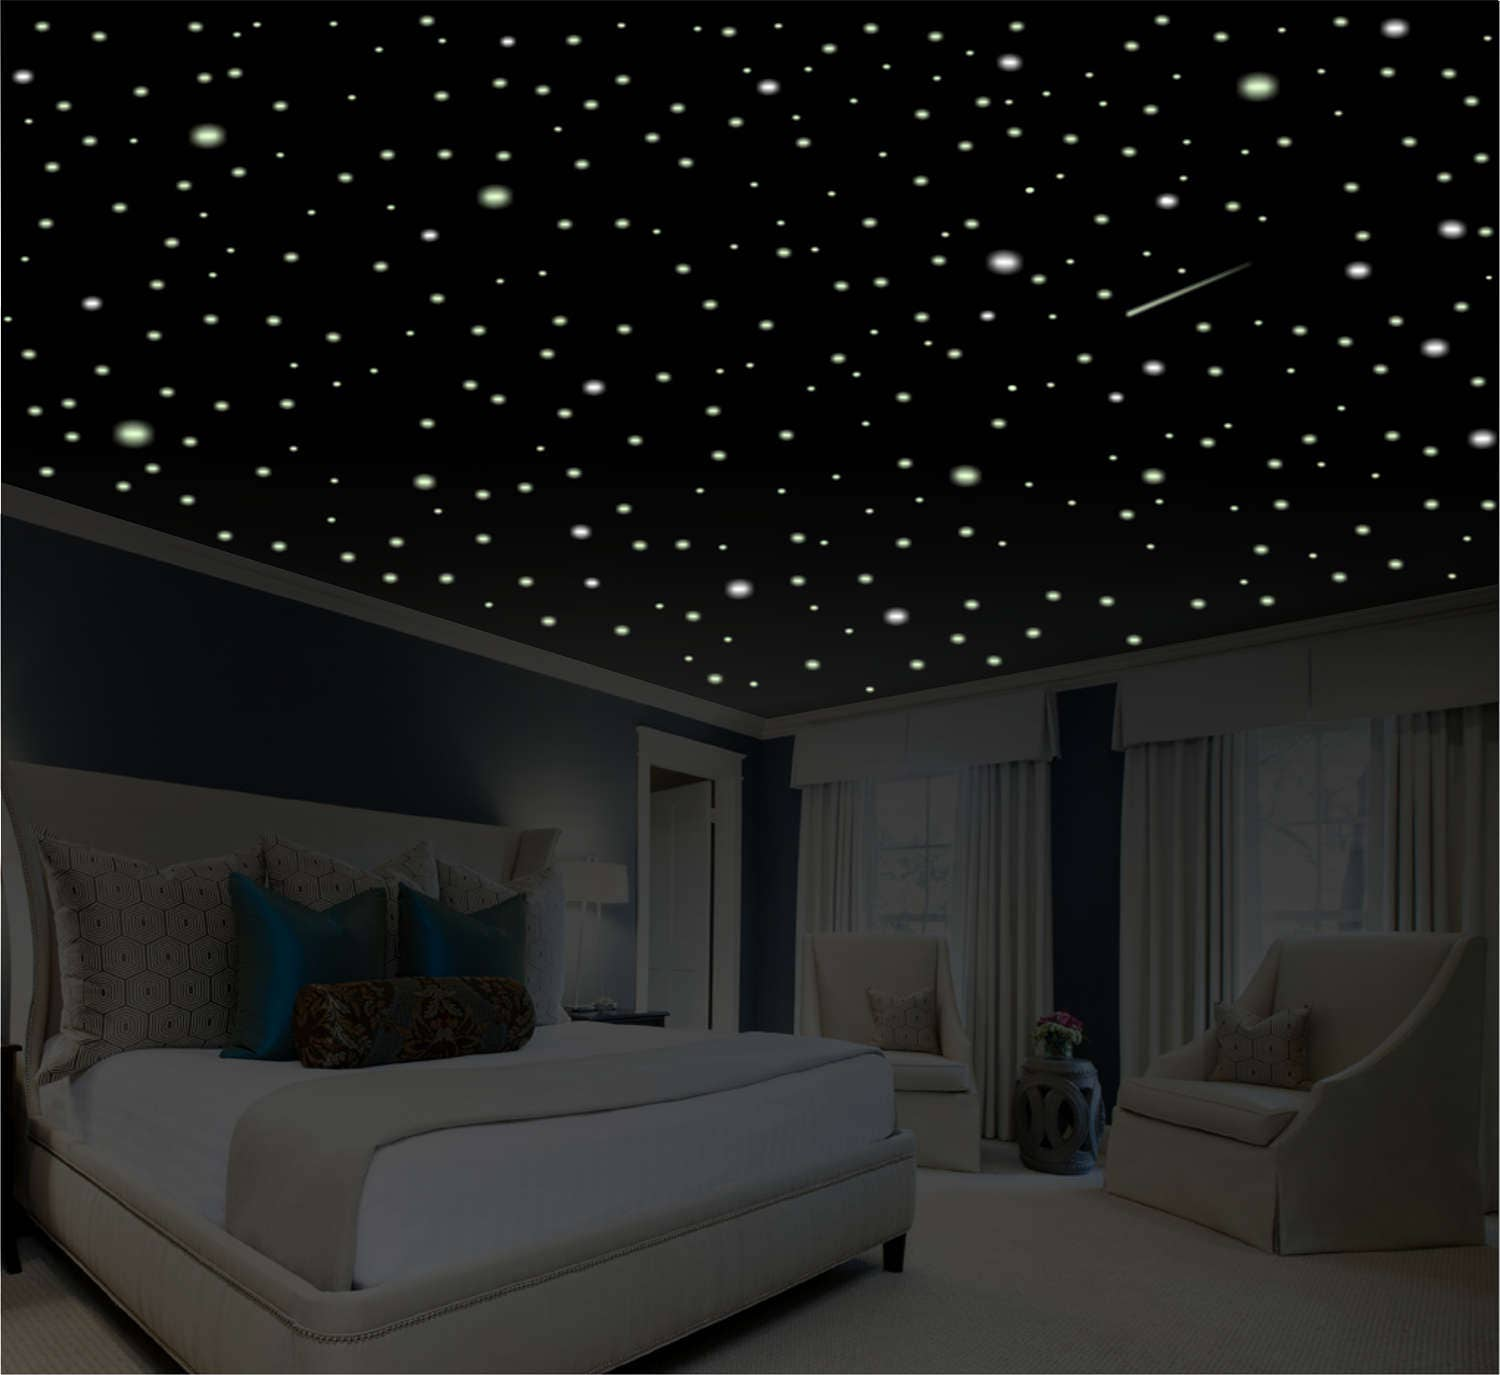 Romantic Bedroom Decor Star Wall Decal Glow In The Dark Stars Romantic Gifts Romantic Wall Decal Ceiling Stars Removable Wall Decor